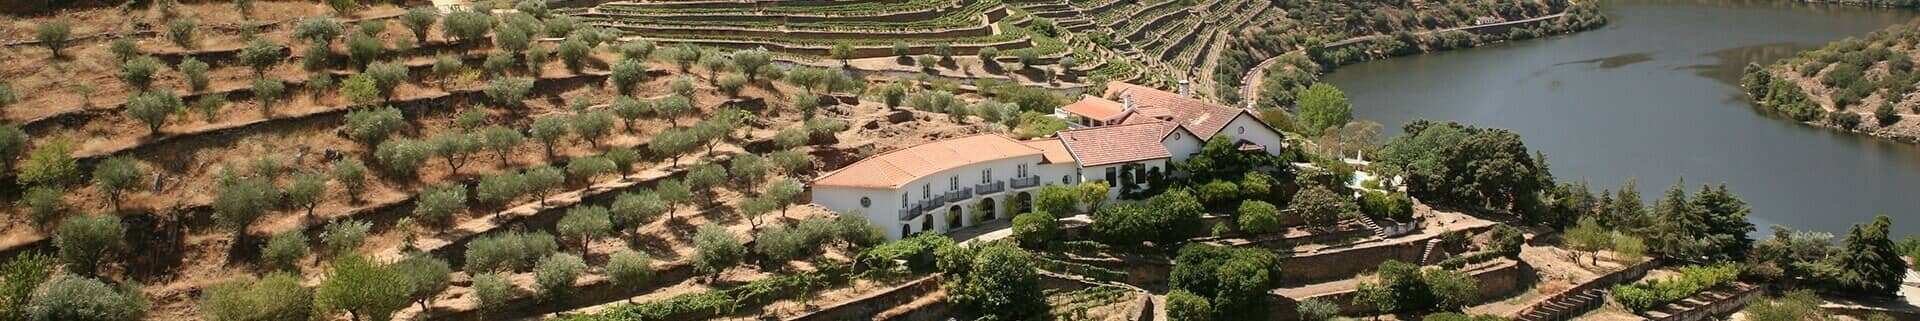 Quinta de Vargellas is pre-eminent among the wine estates of the Douro. Located in the wild and hilly eastern reaches of the valley, it has been...